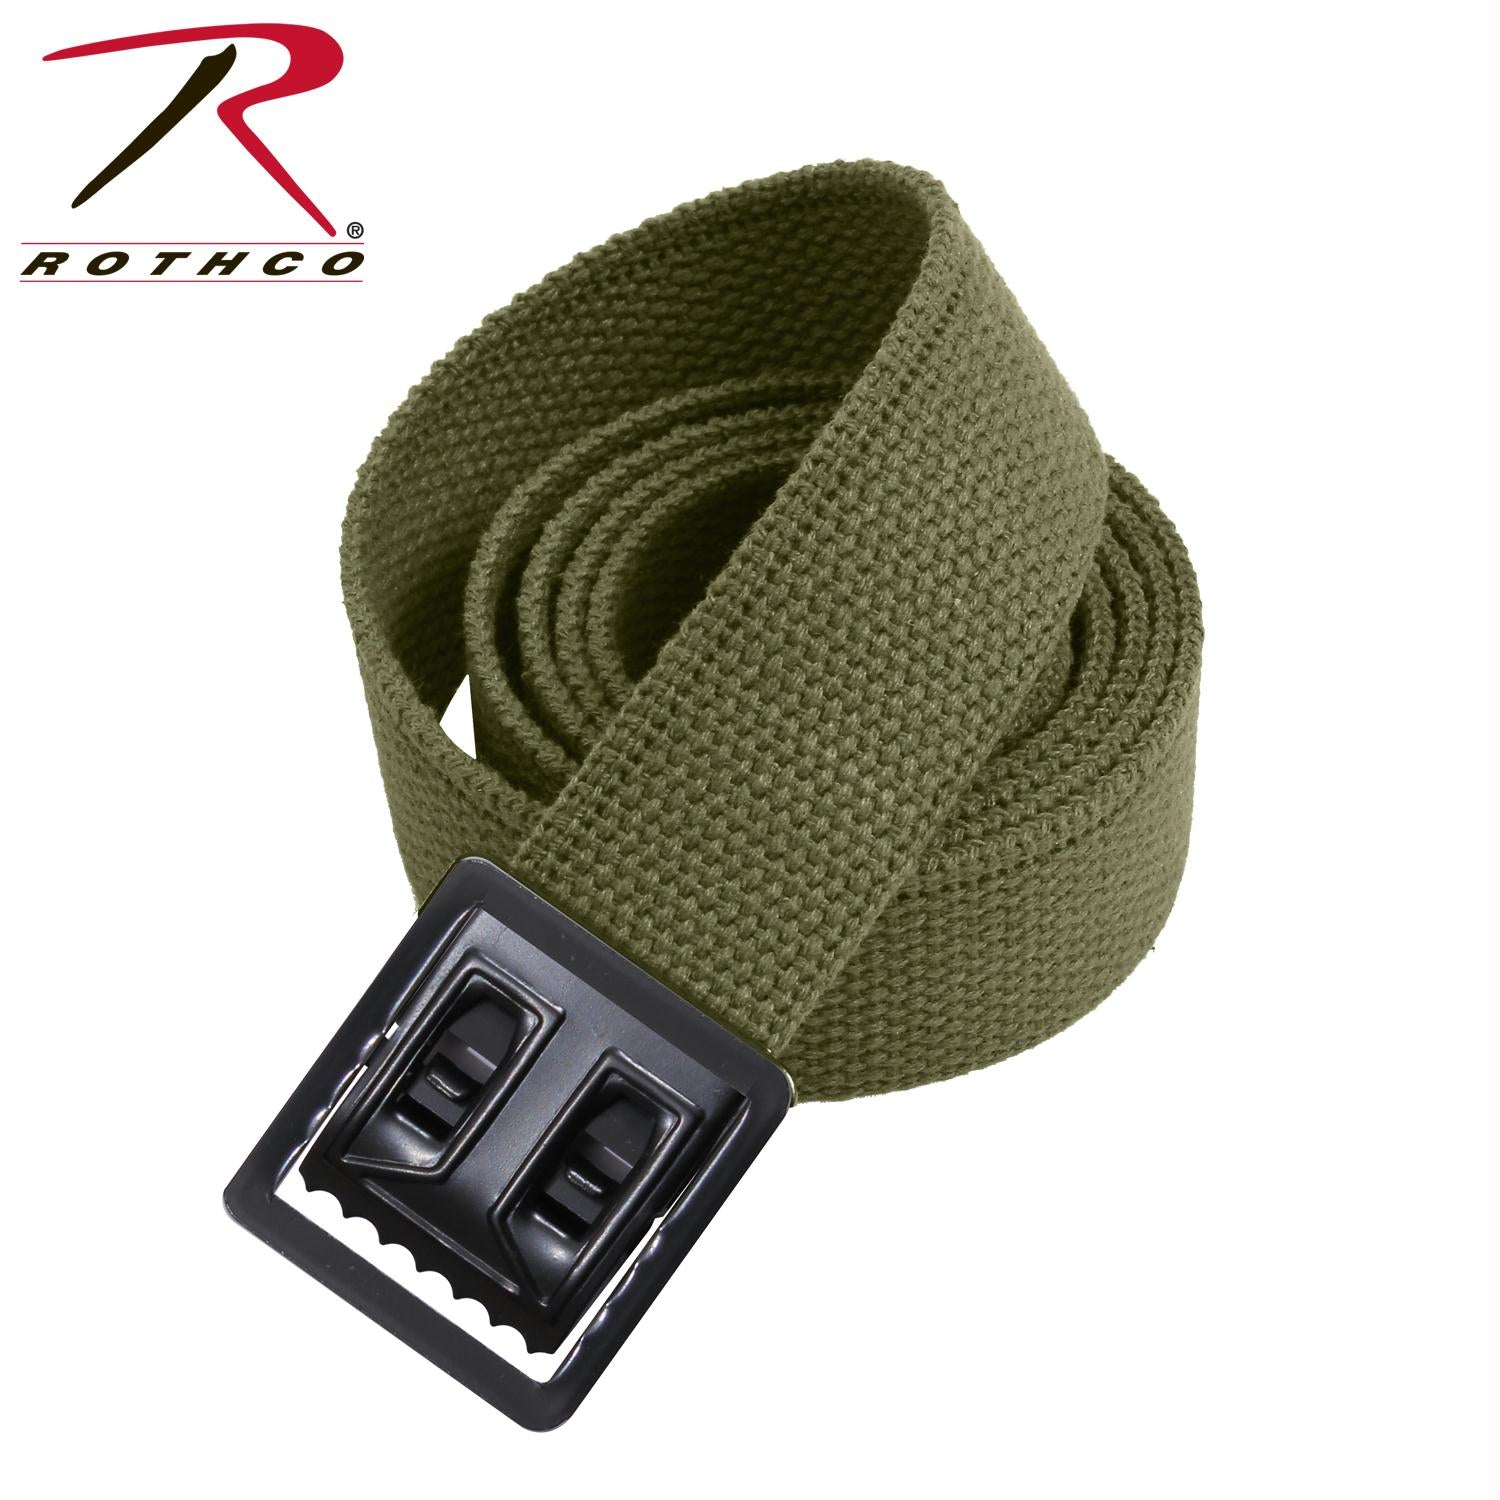 Rothco Military Web Belts w/ Open Face Buckle - Black / Olive Drab / 44 Inches